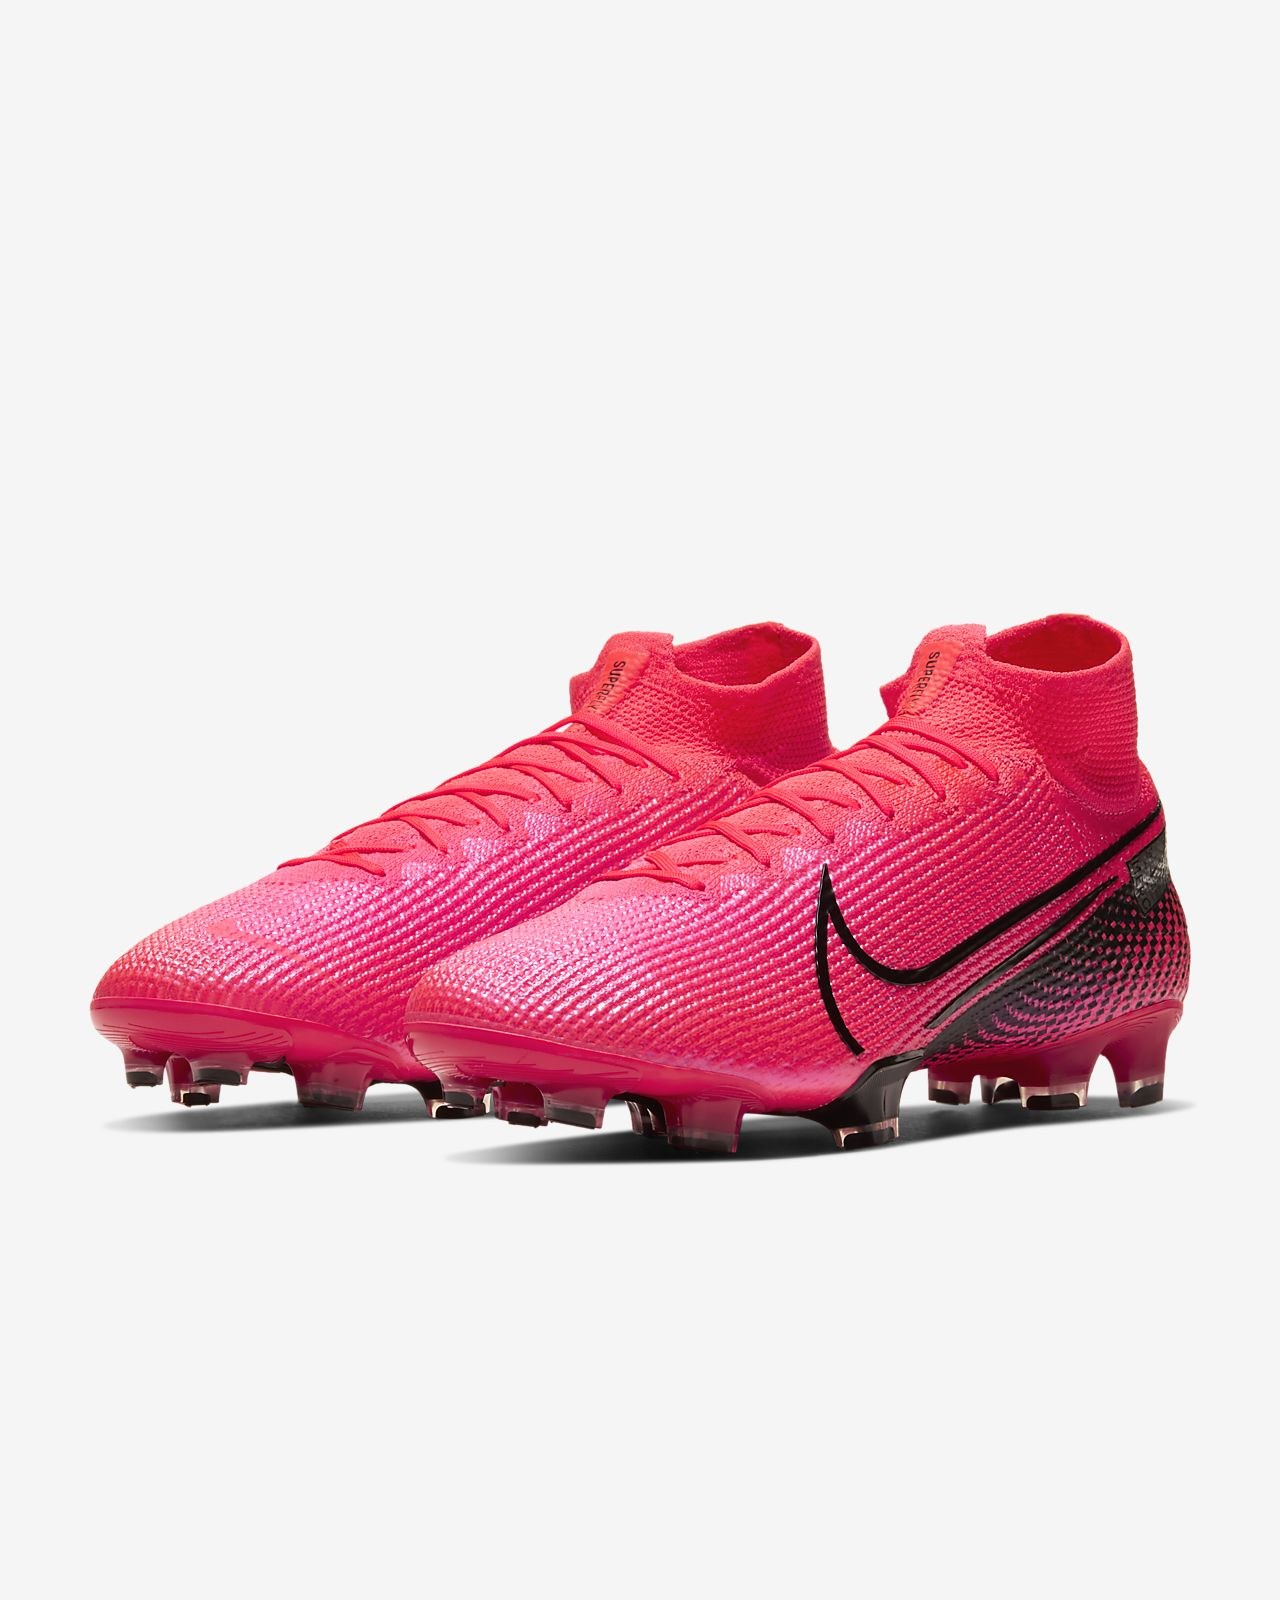 Nike Mercurial Superfly 7 Elite FG Firm